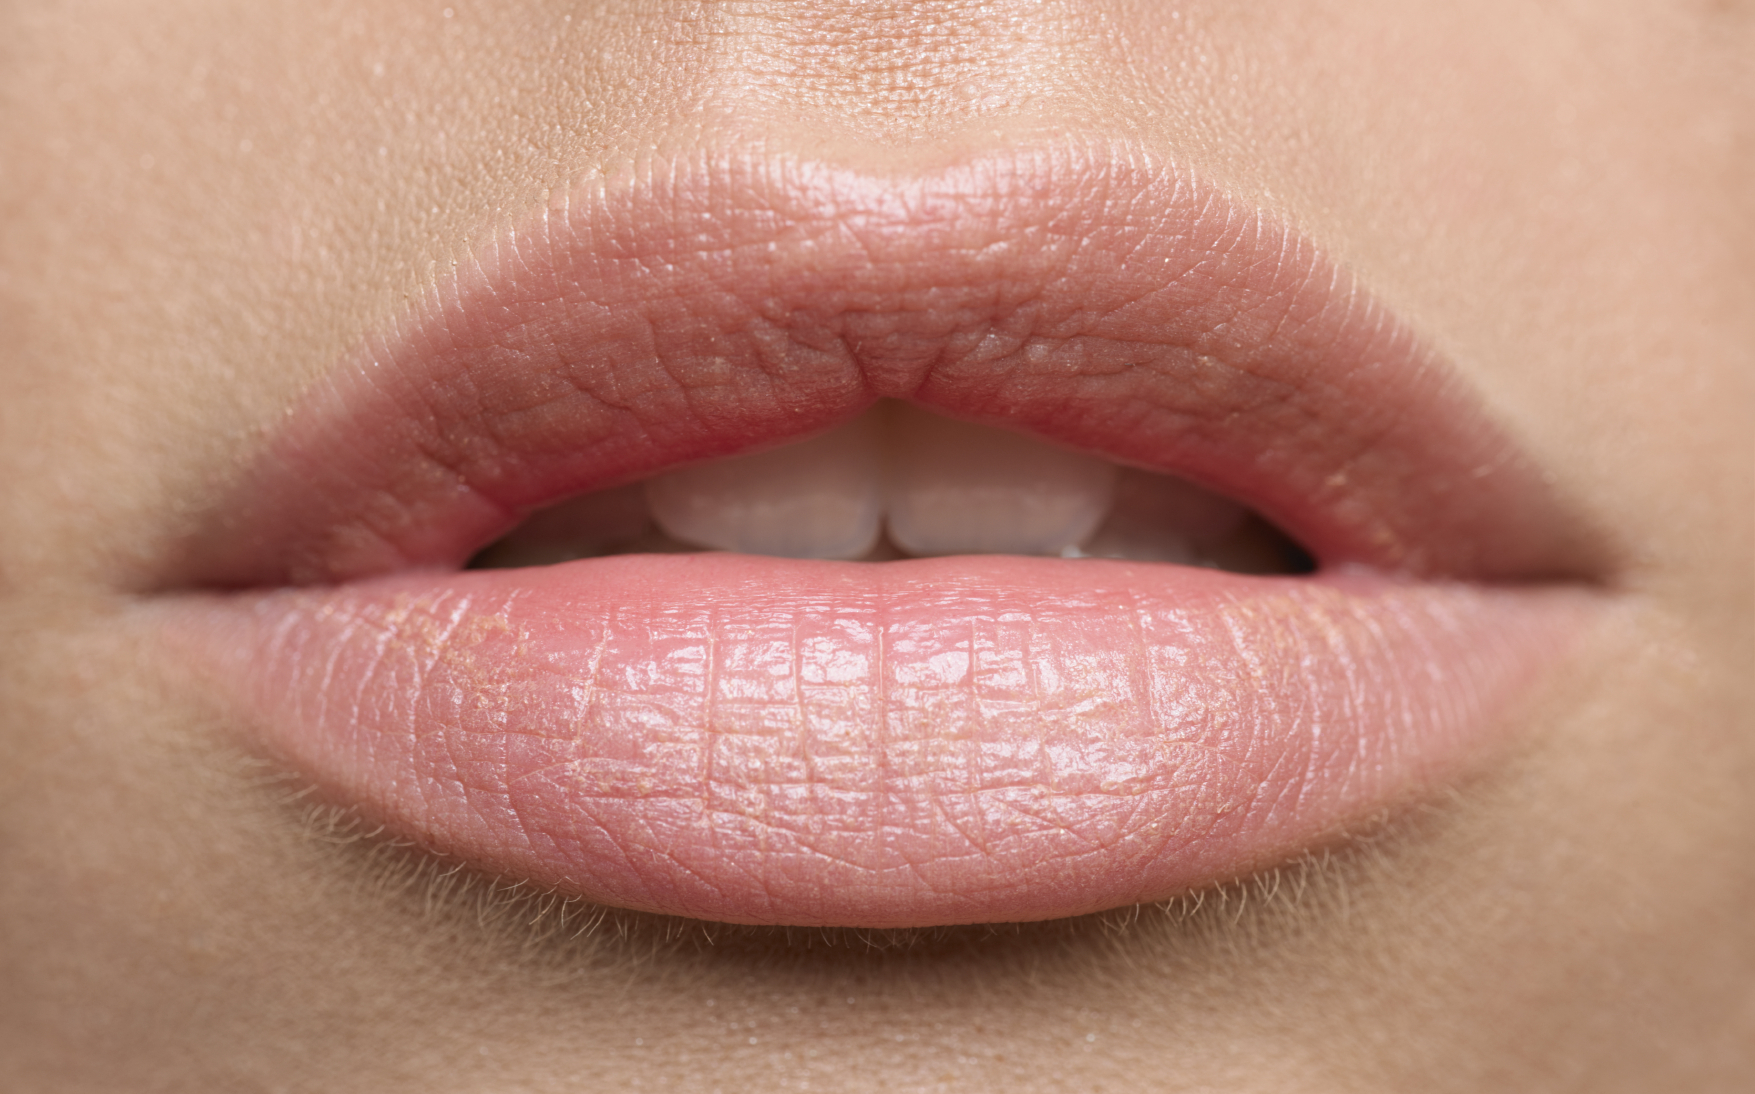 Lips for Life – Lip implants | London Lipo Institute